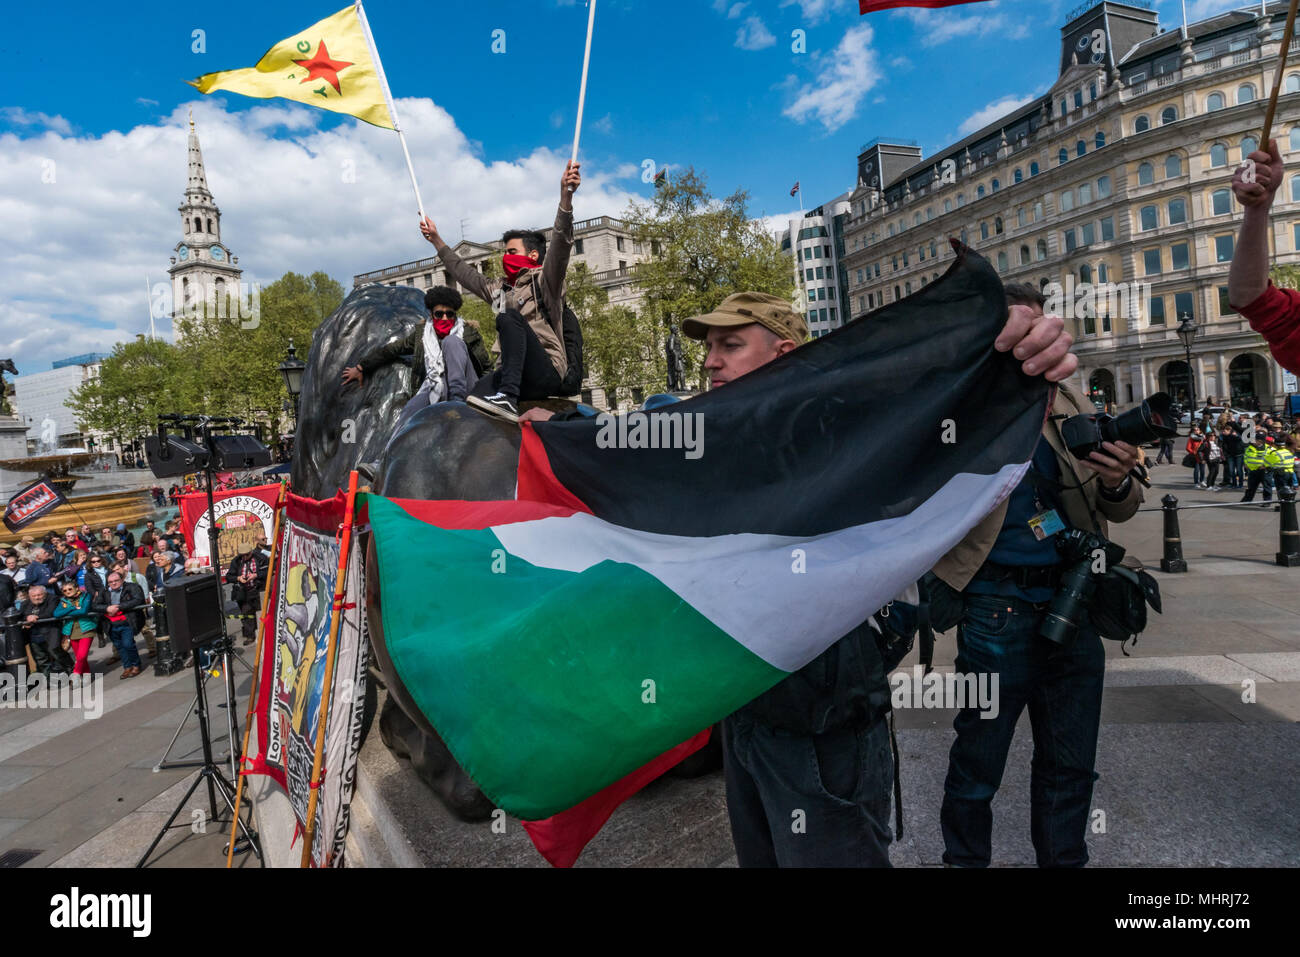 May 1, 2018 - London, UK. 1st May 2018. A man holds a Palestinian ...